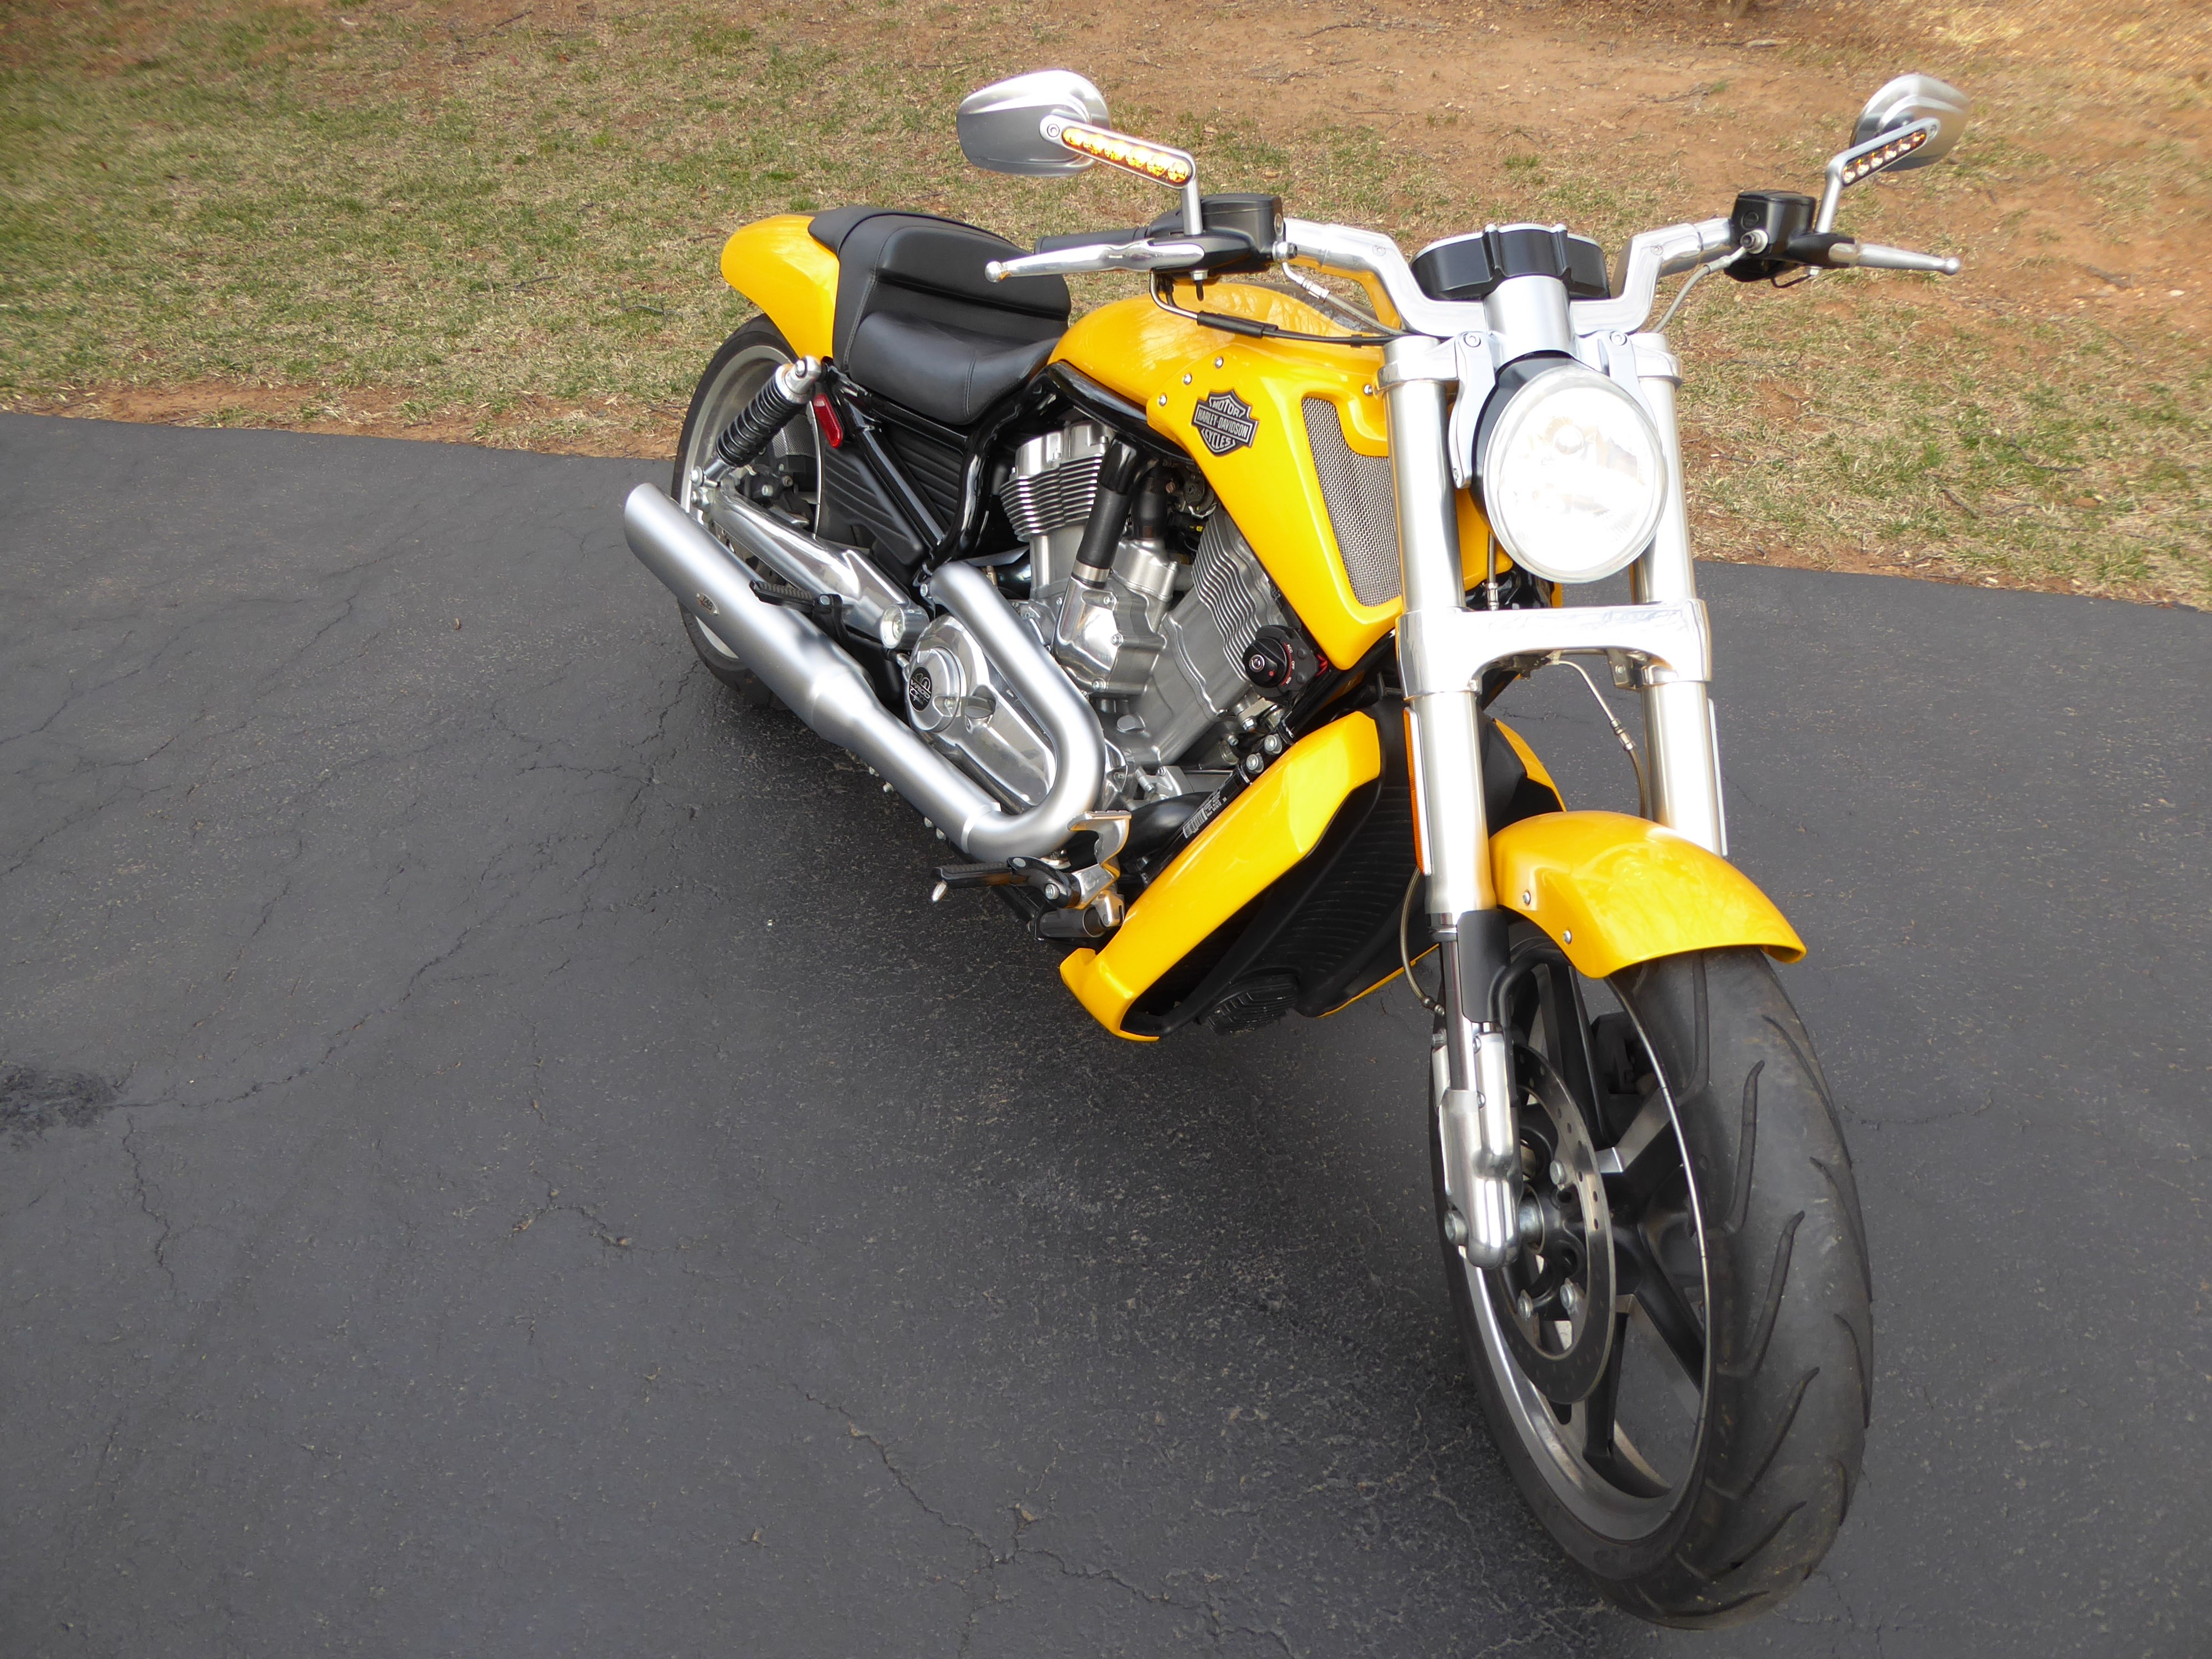 2017 Road Glide Ultra For Sale Oklahoma >> 2012 to 2015 New & Used Harley-Davidson® Motorcycles near Andalusia, PA For Sale (892 Bikes ...